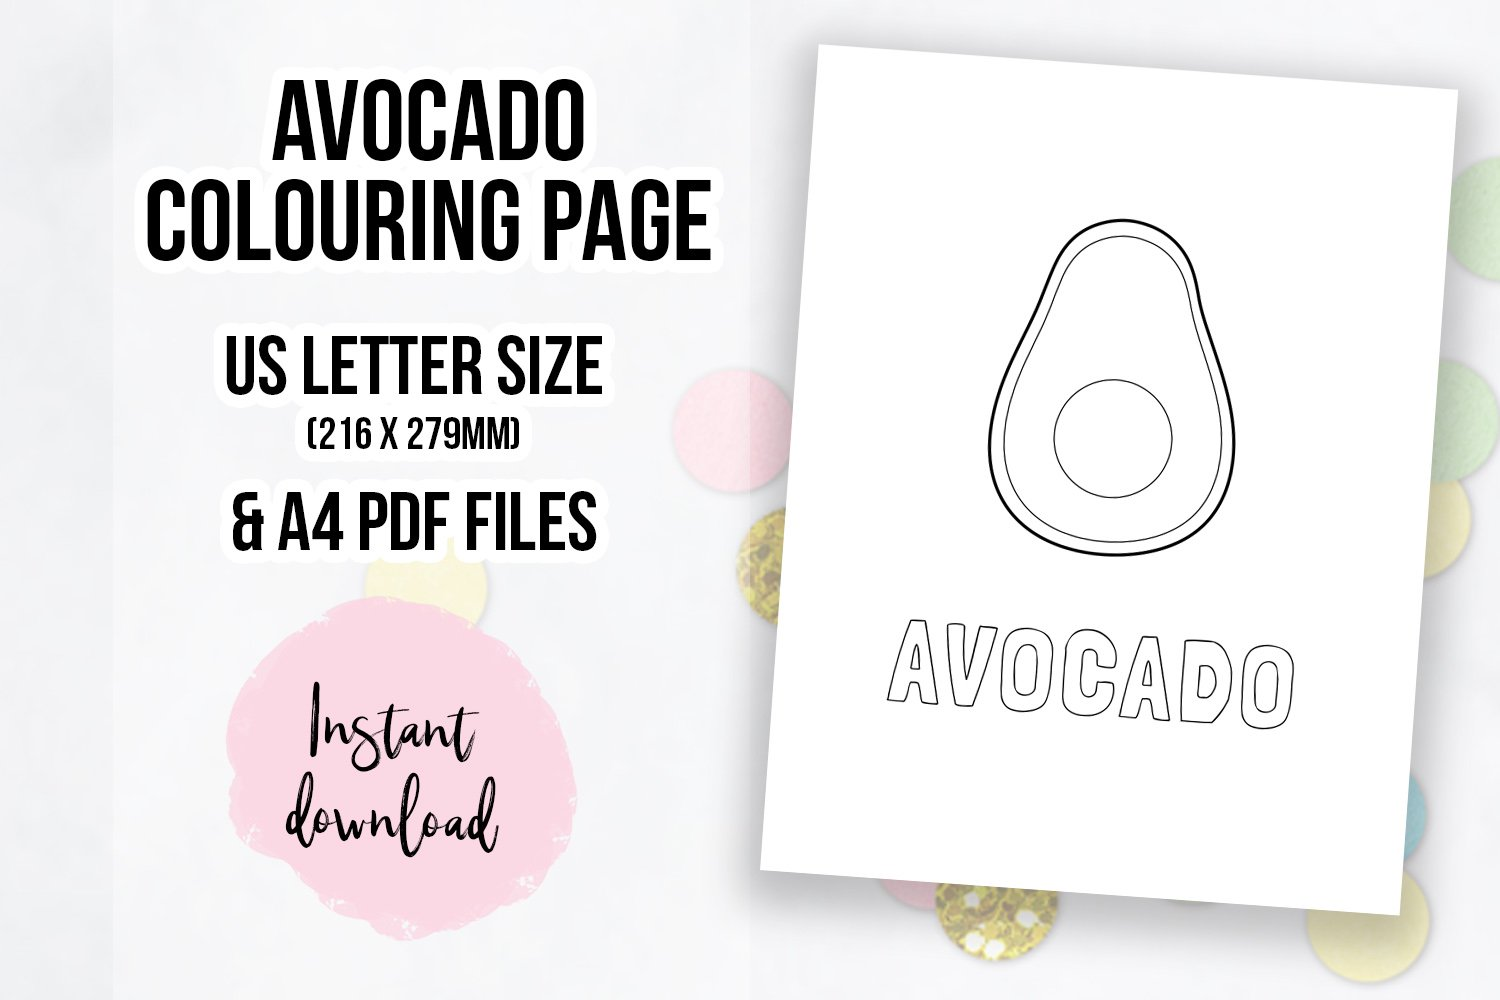 cute avocado coloring page colouring book page 602476 coloring pages design bundles cute avocado coloring page colouring book page